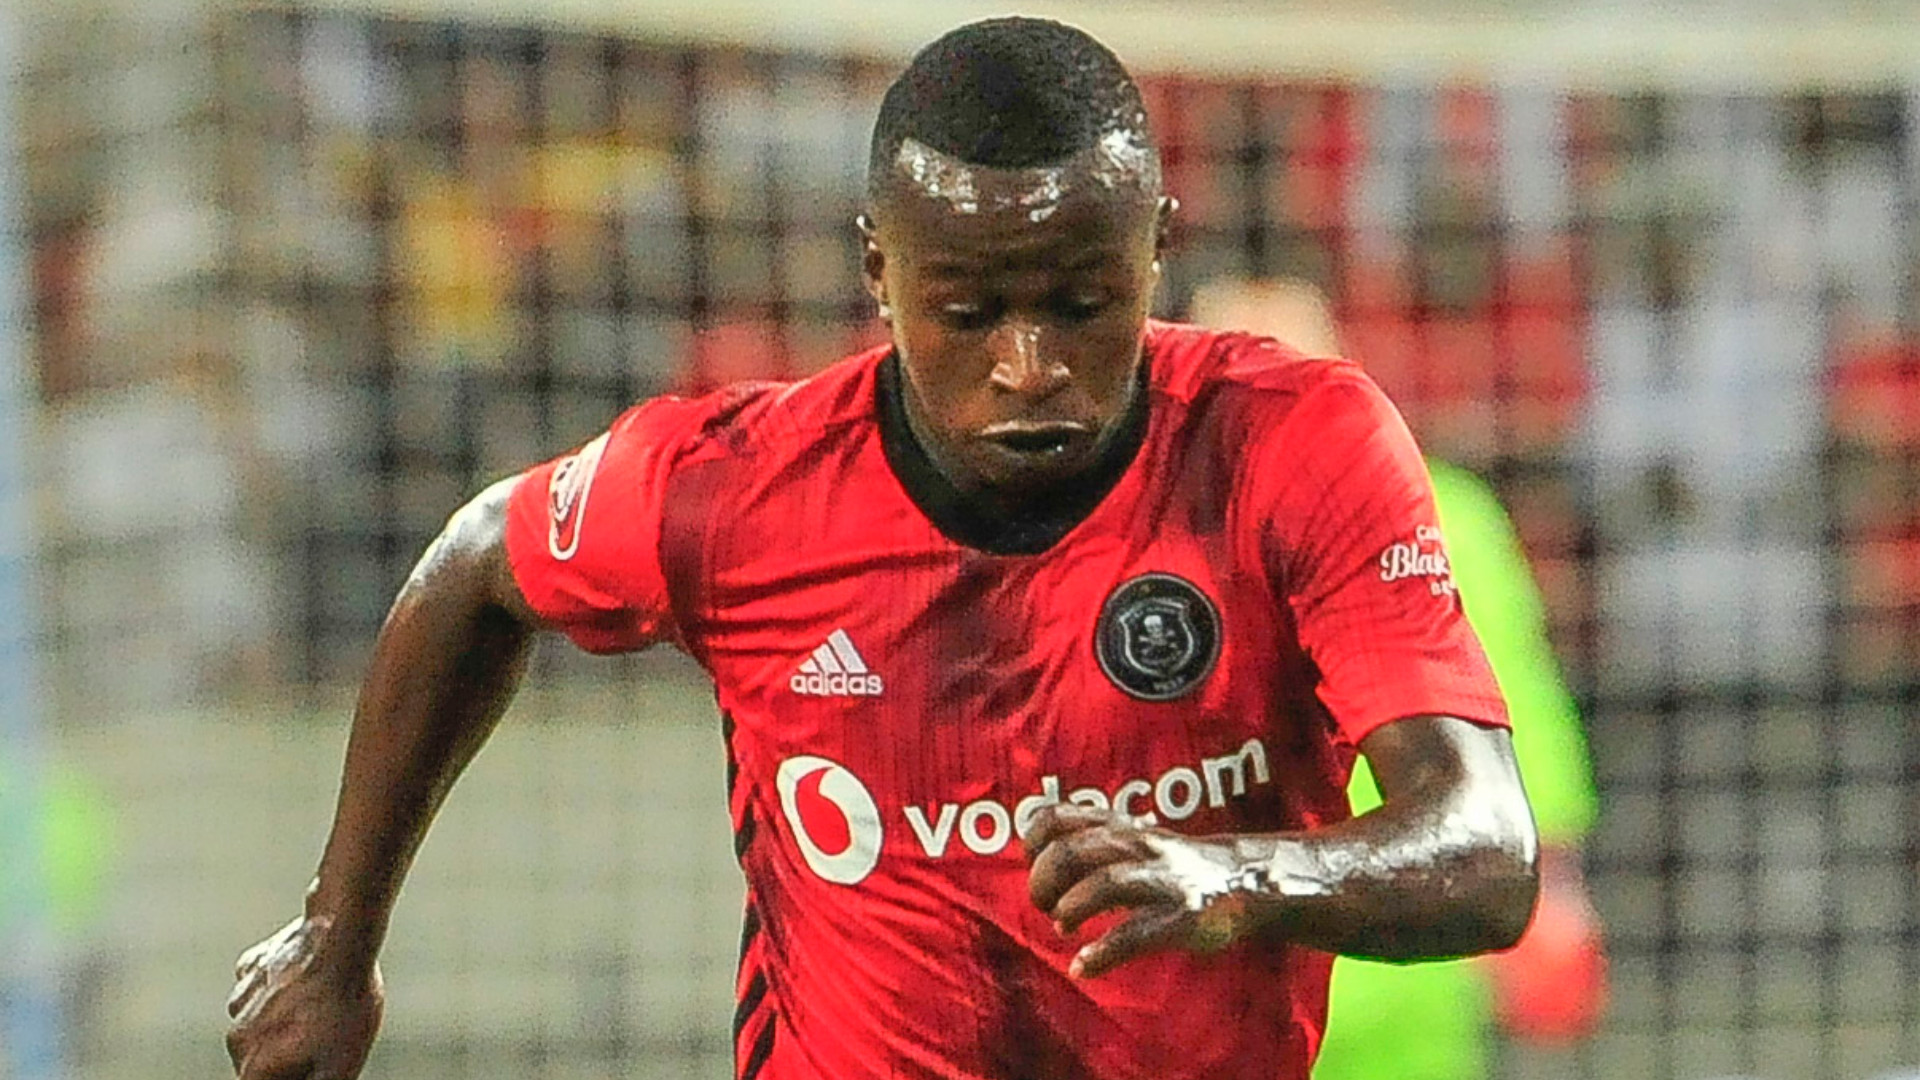 Siphesihle Ndlovu of Orlando Pirates, February 2020